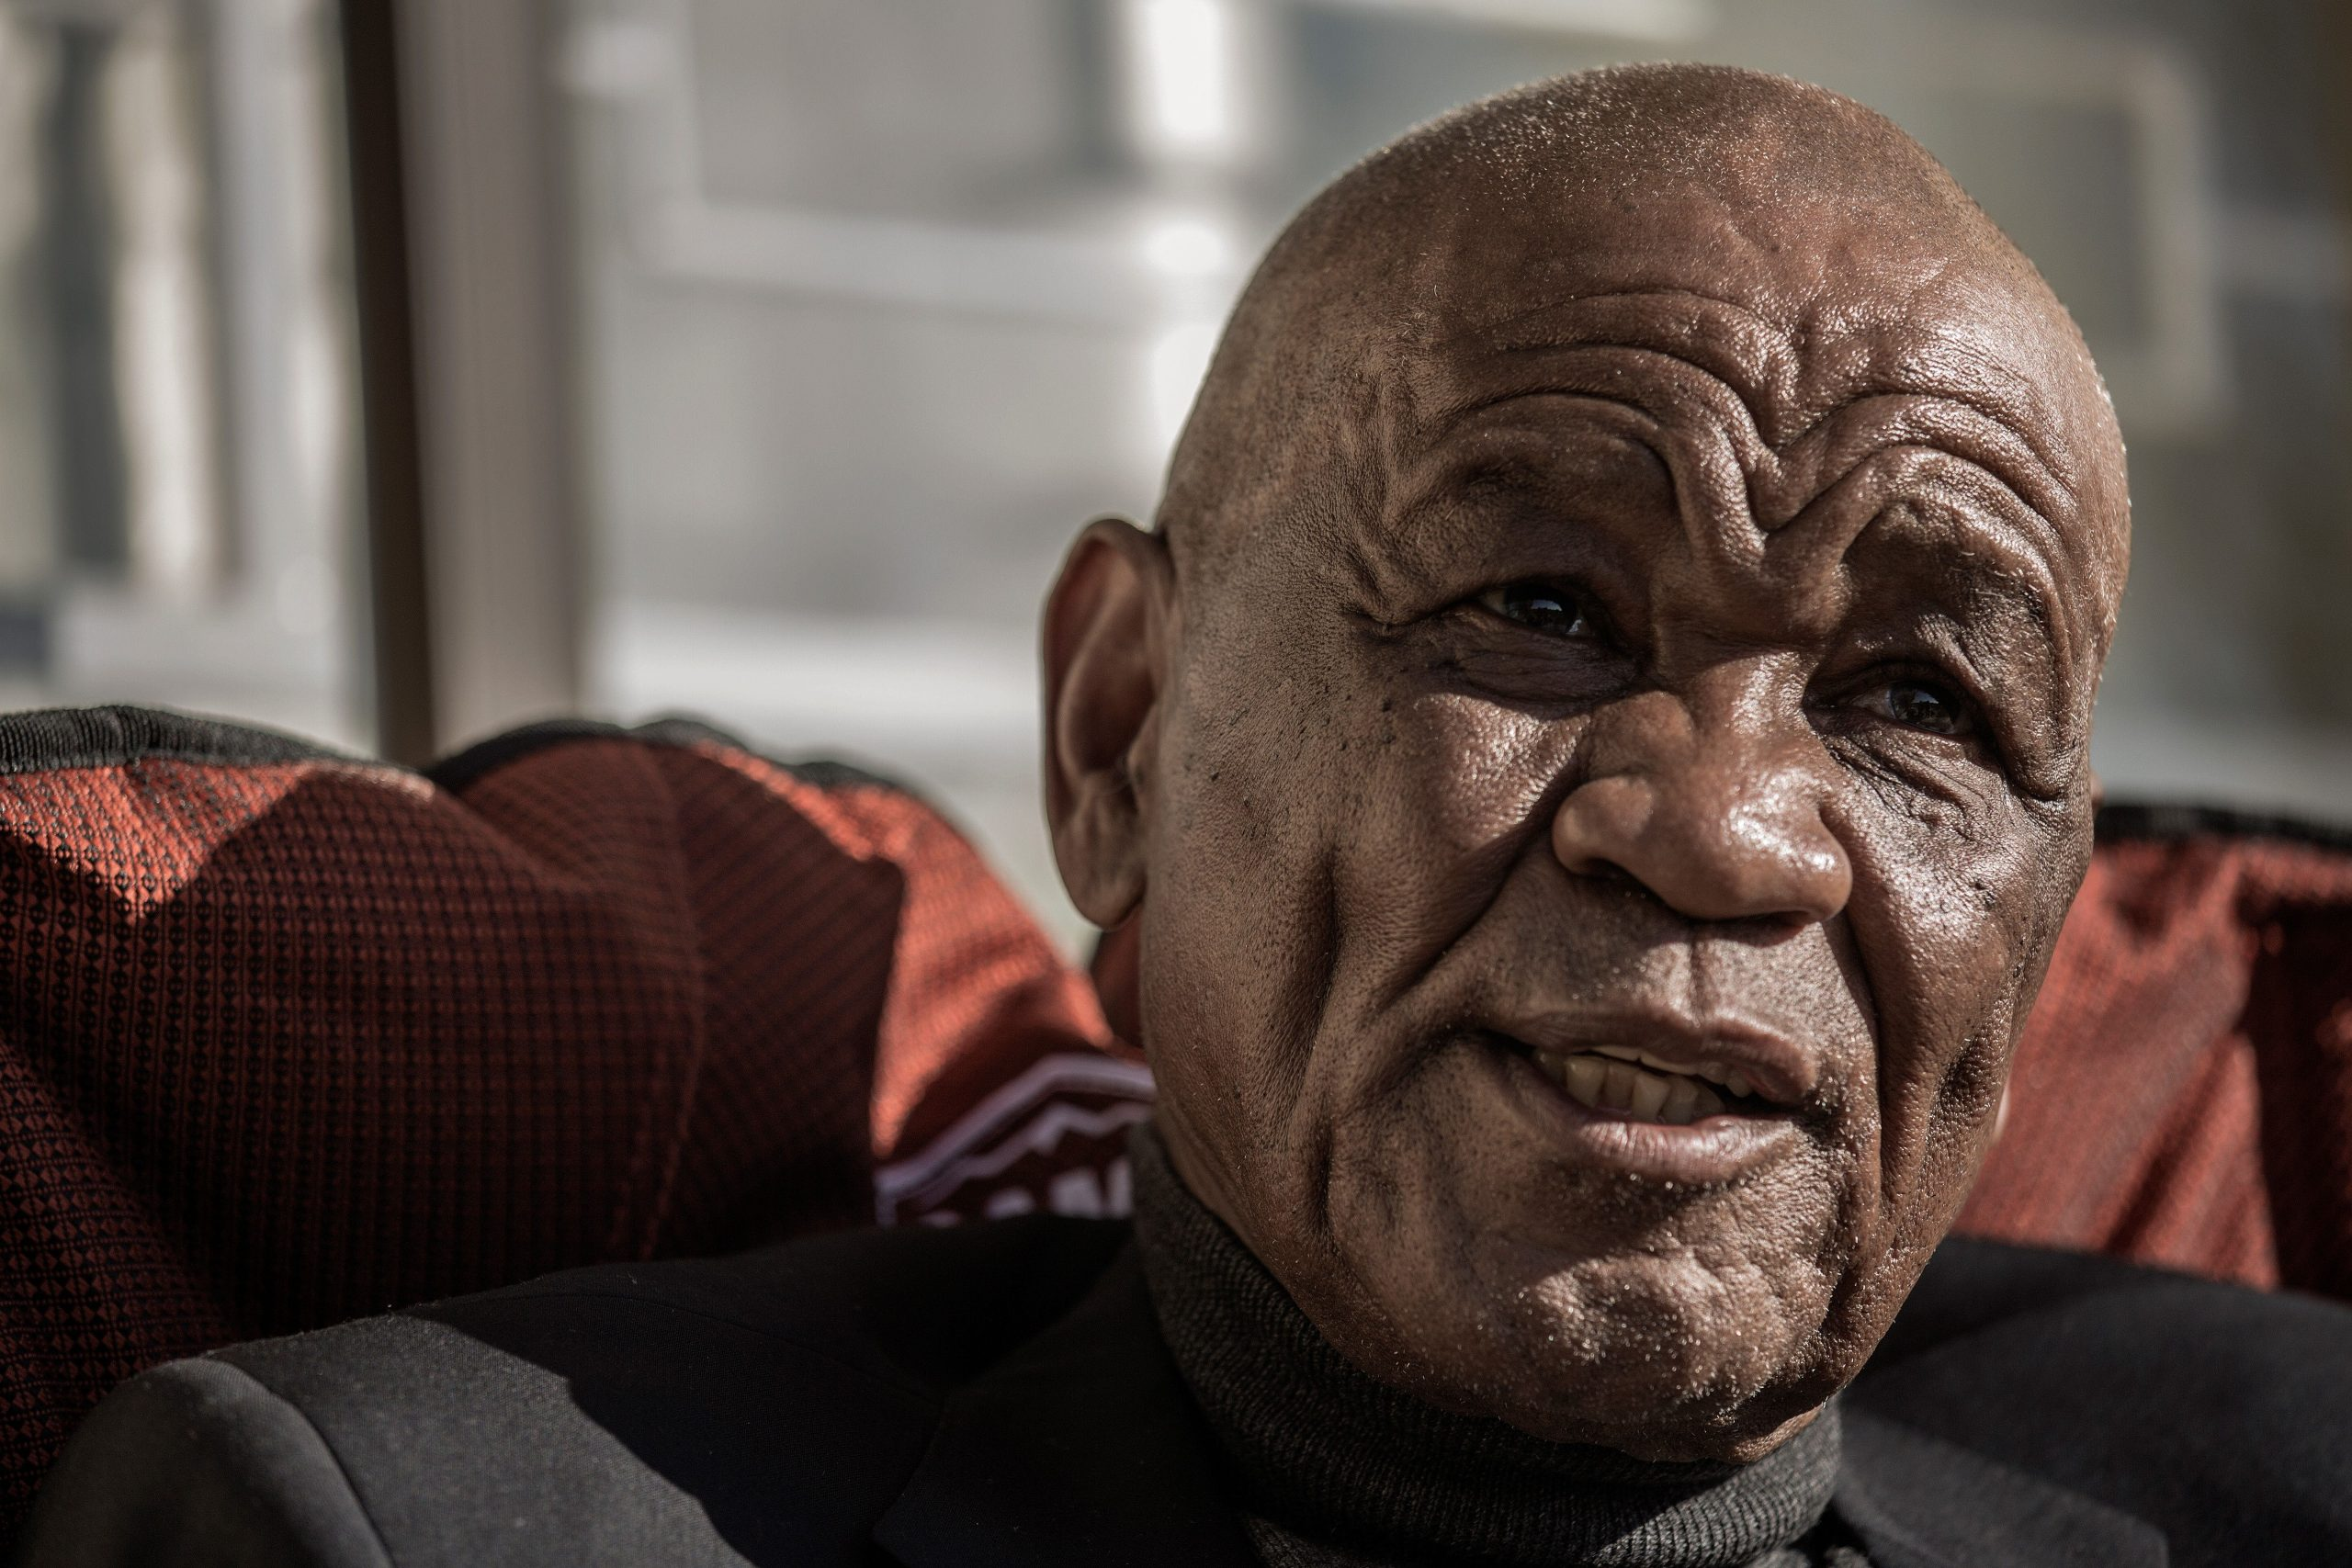 South Africa's Efforts to Stabilise Lesotho Have Failed. Less Intervention May Be More Effective